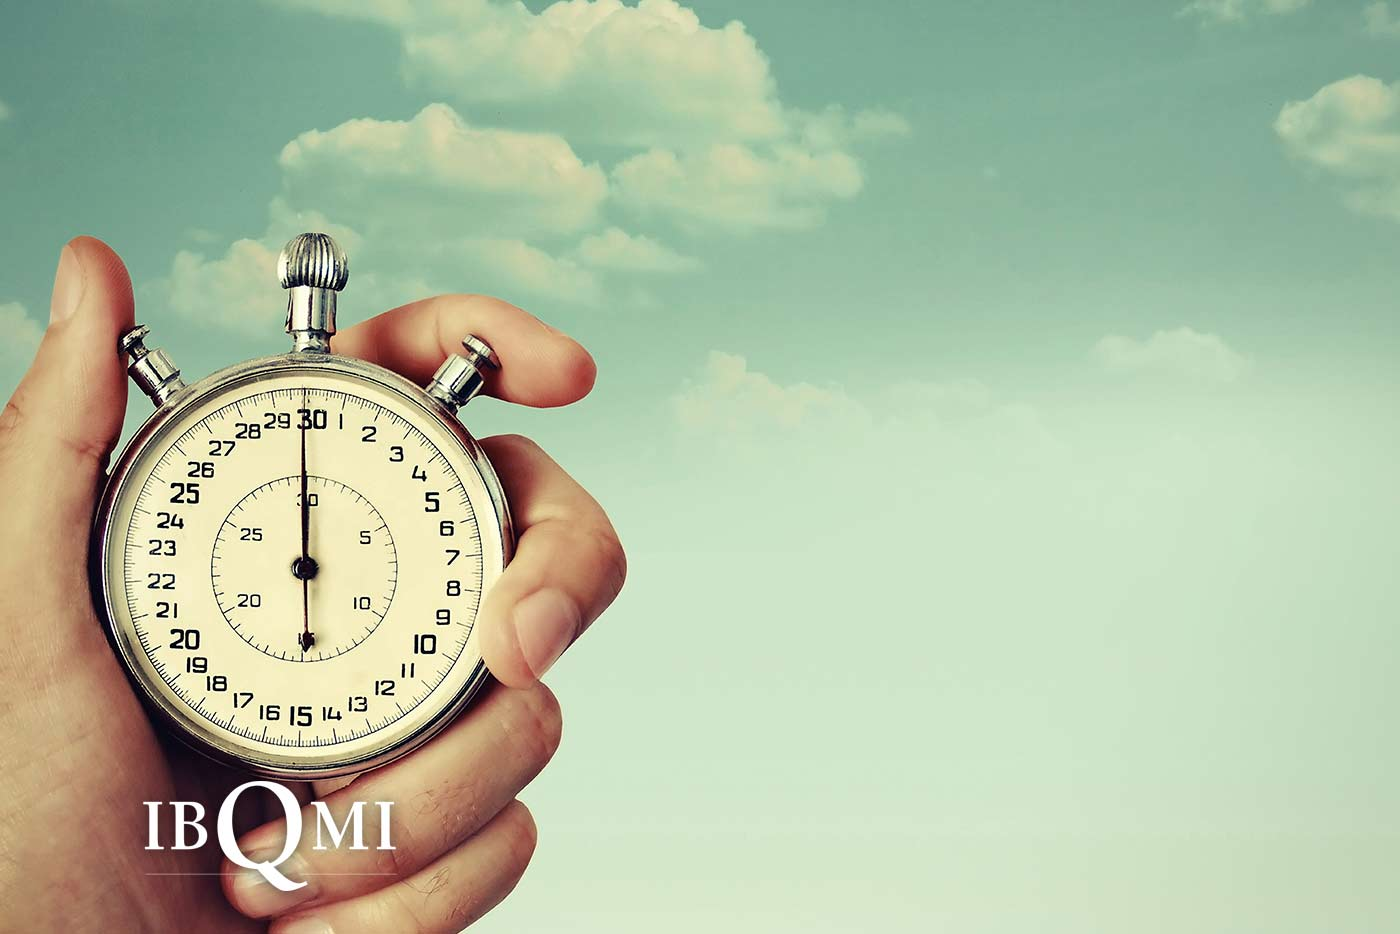 Can a company save time with ibqmi tqm